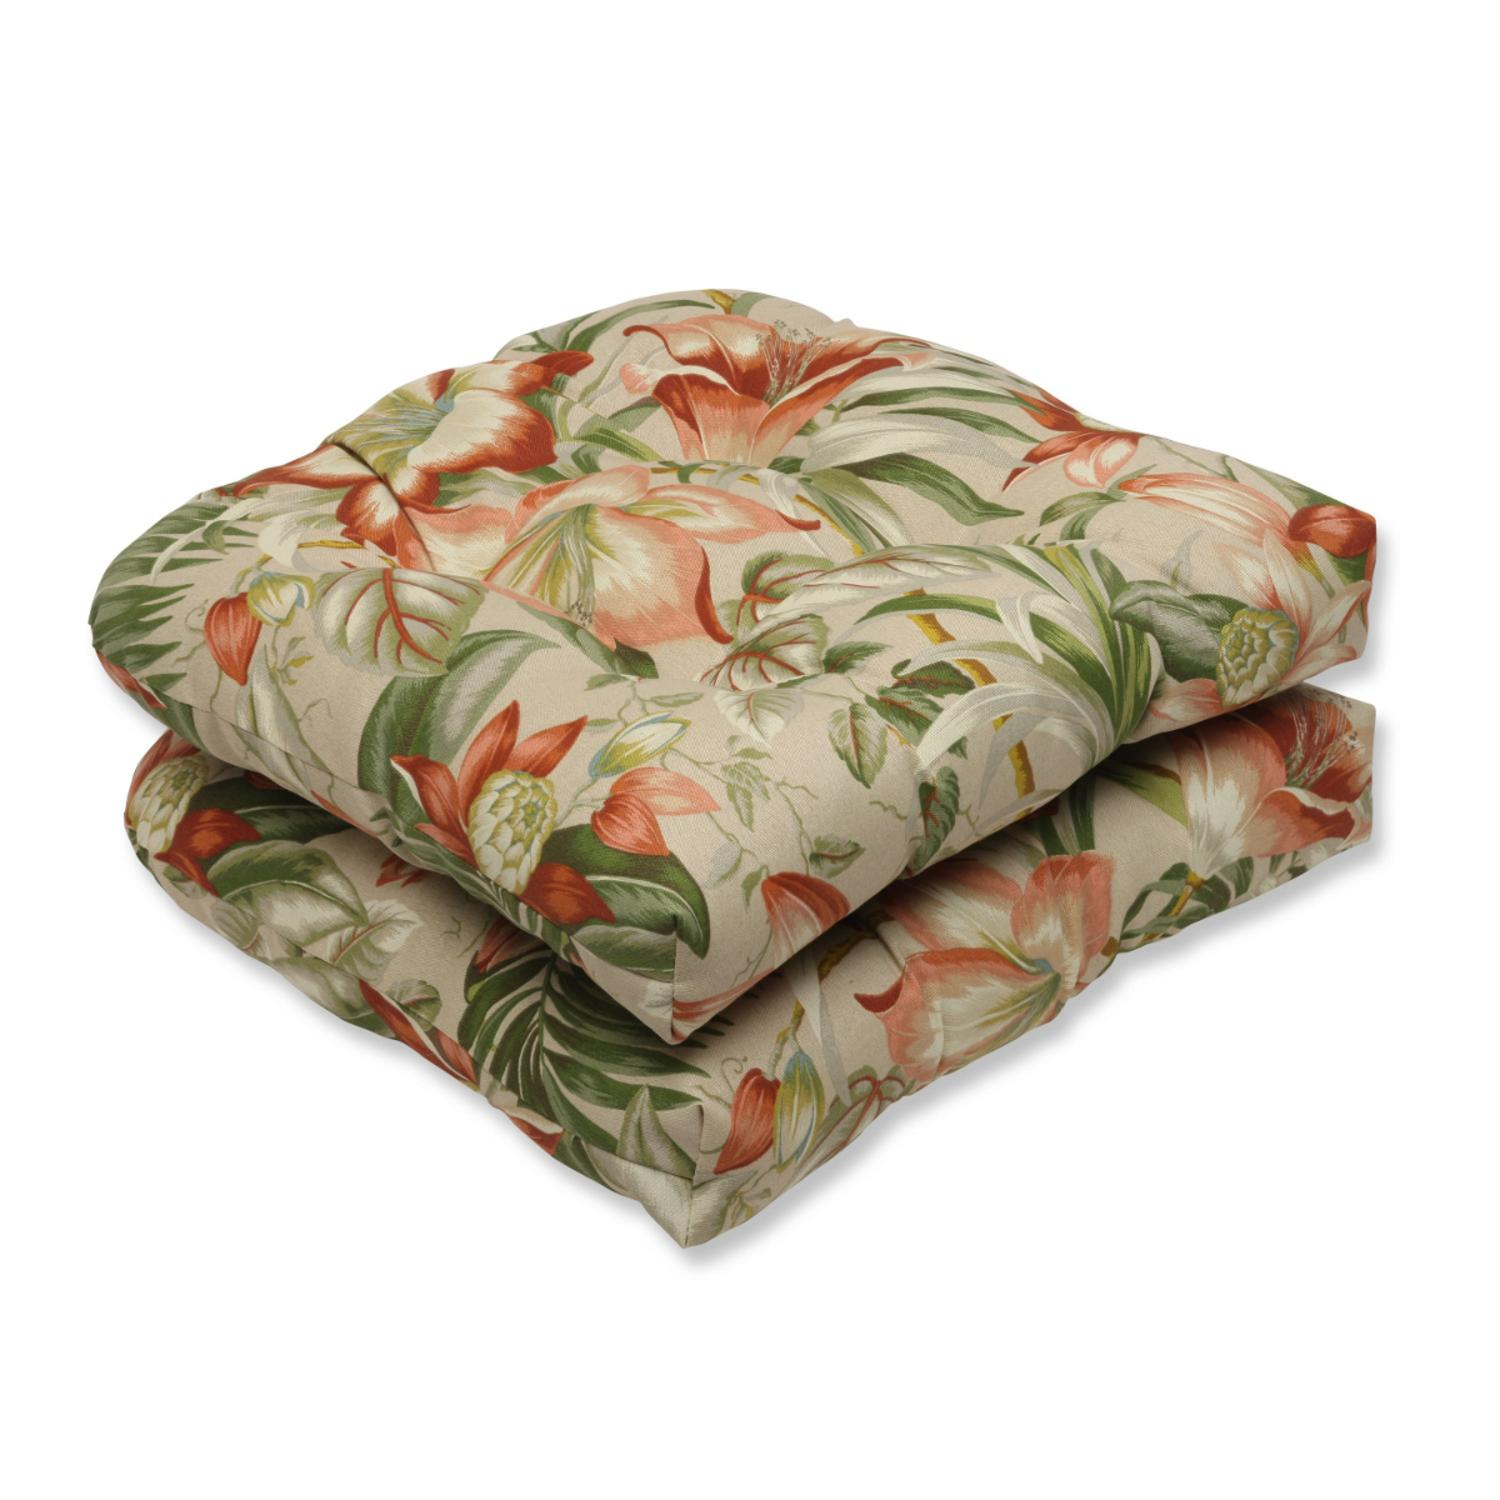 """Set of 2 Green, Tan and Coral Tropical Garden Decorative Outdoor Patio Wicker Chair Seat Cushions 19"""" by CC Outdoor Living"""